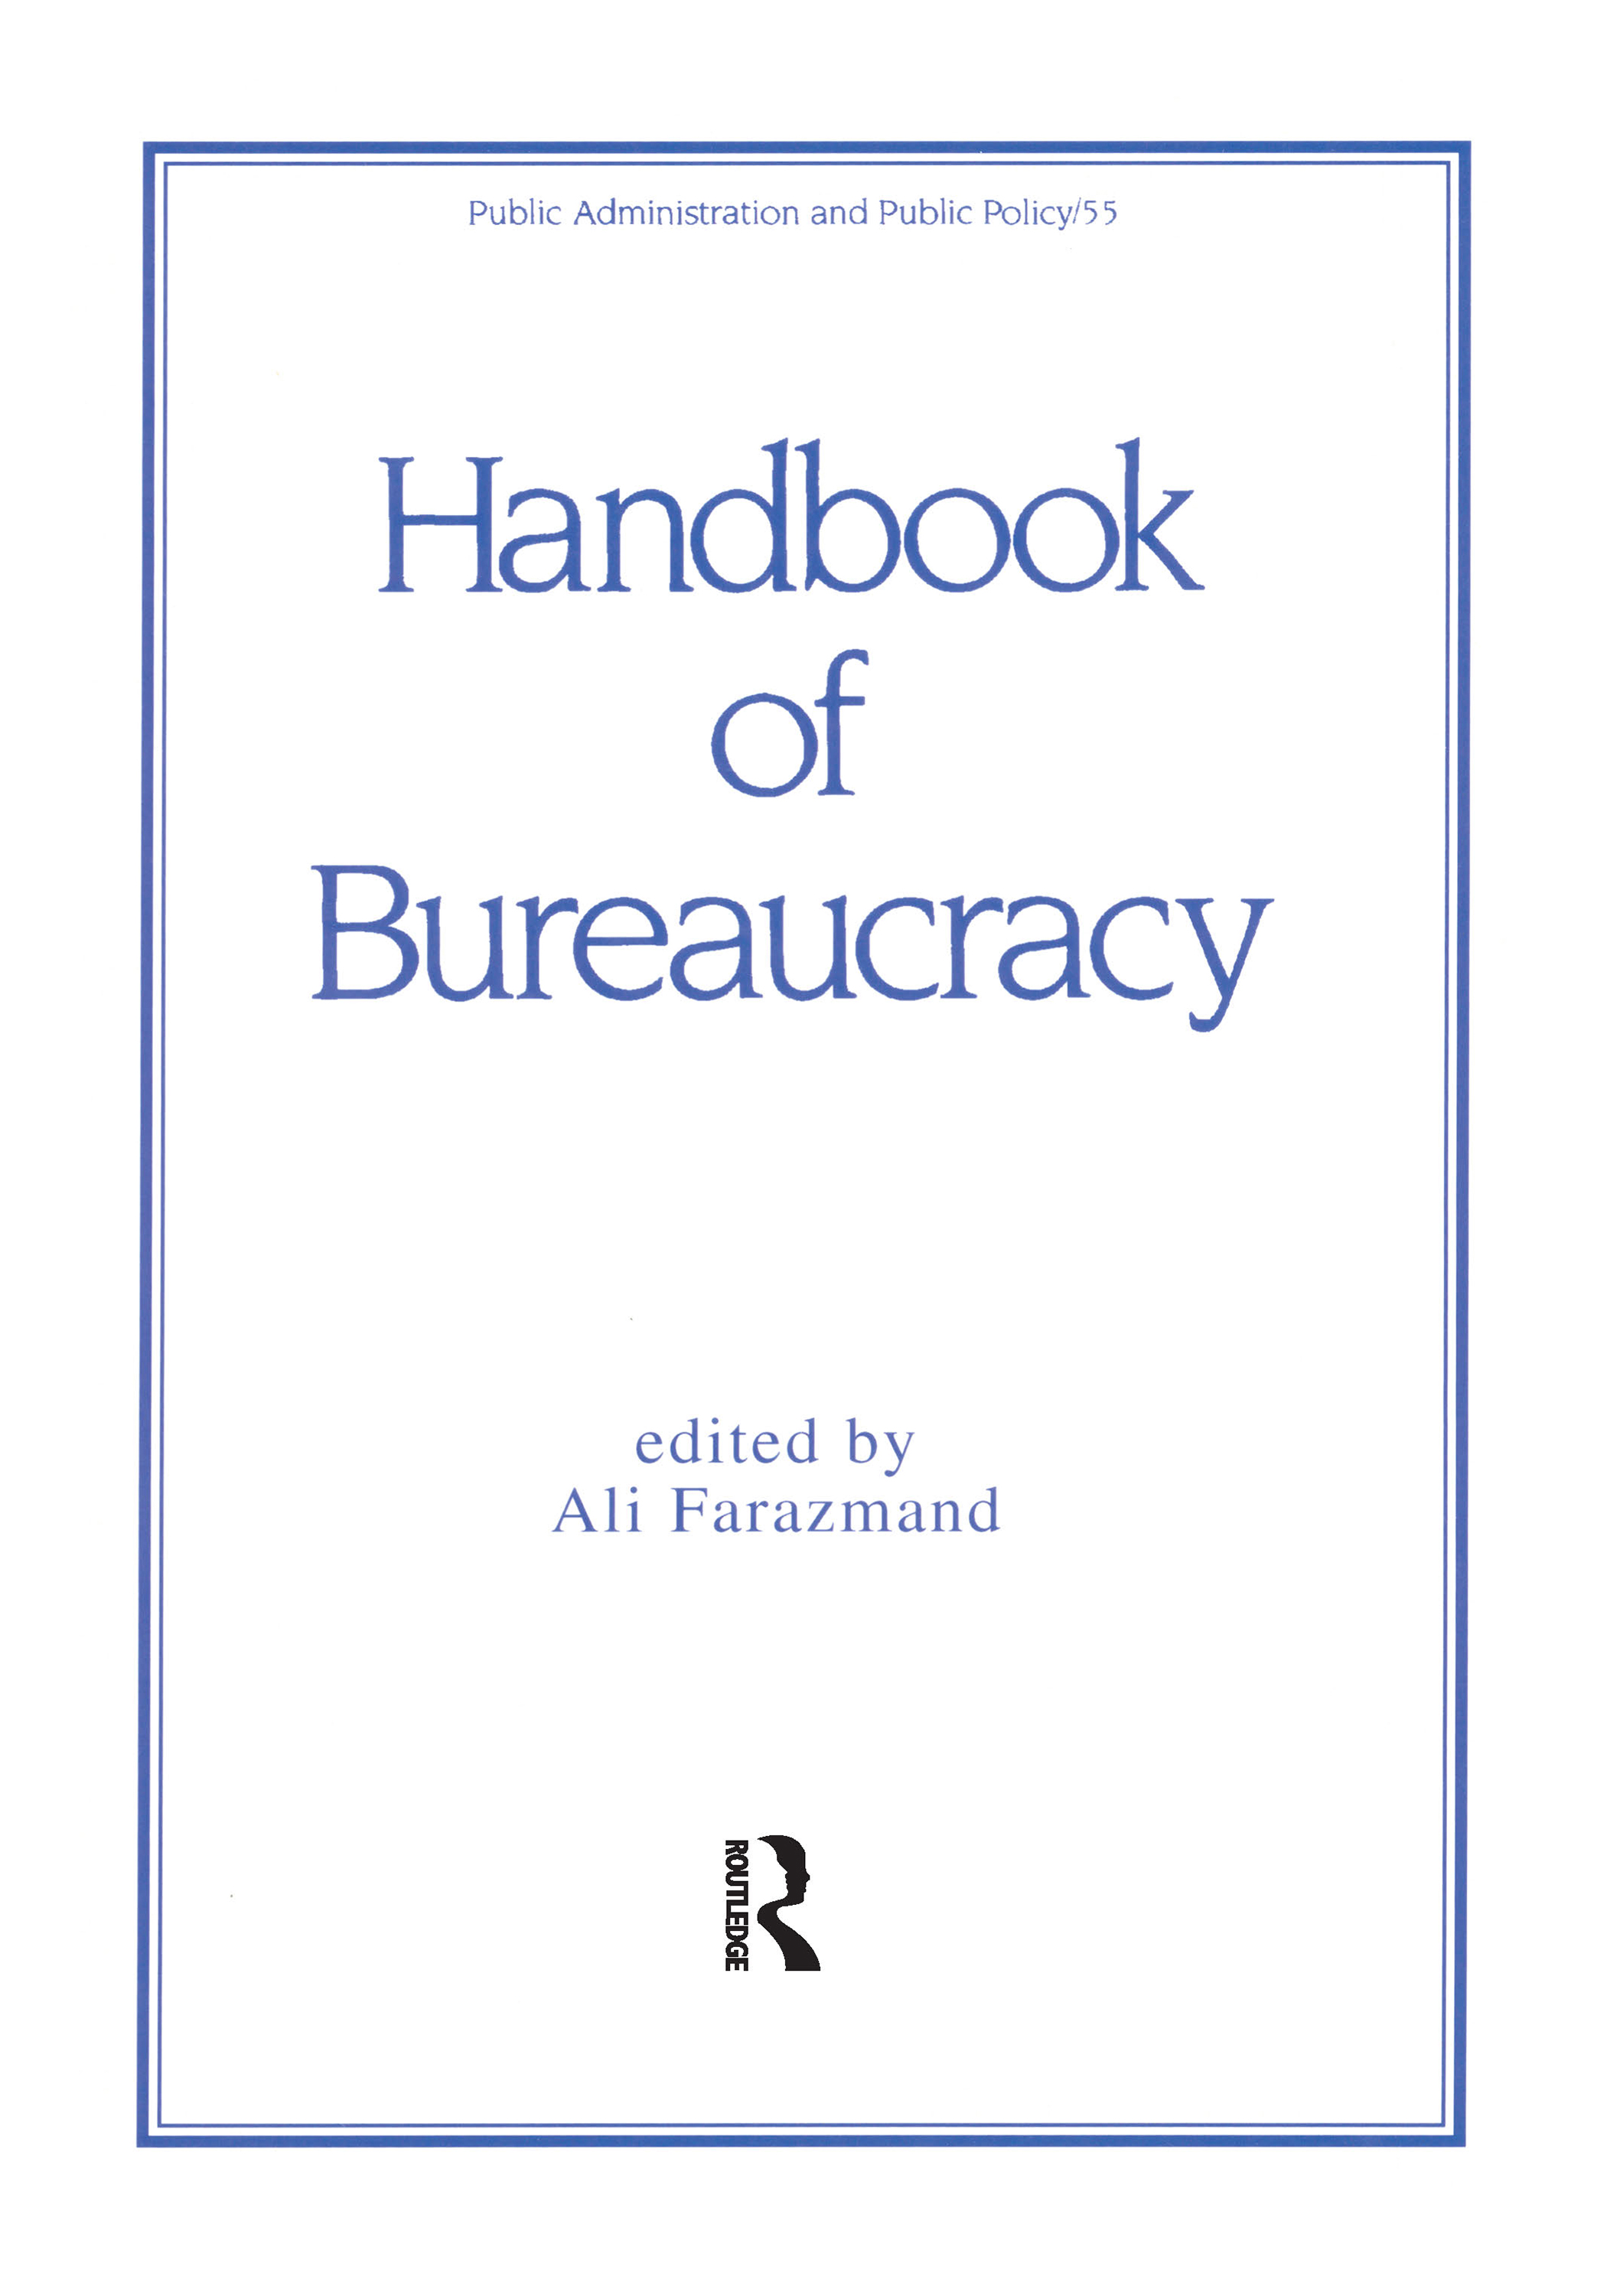 Handbook of Bureaucracy